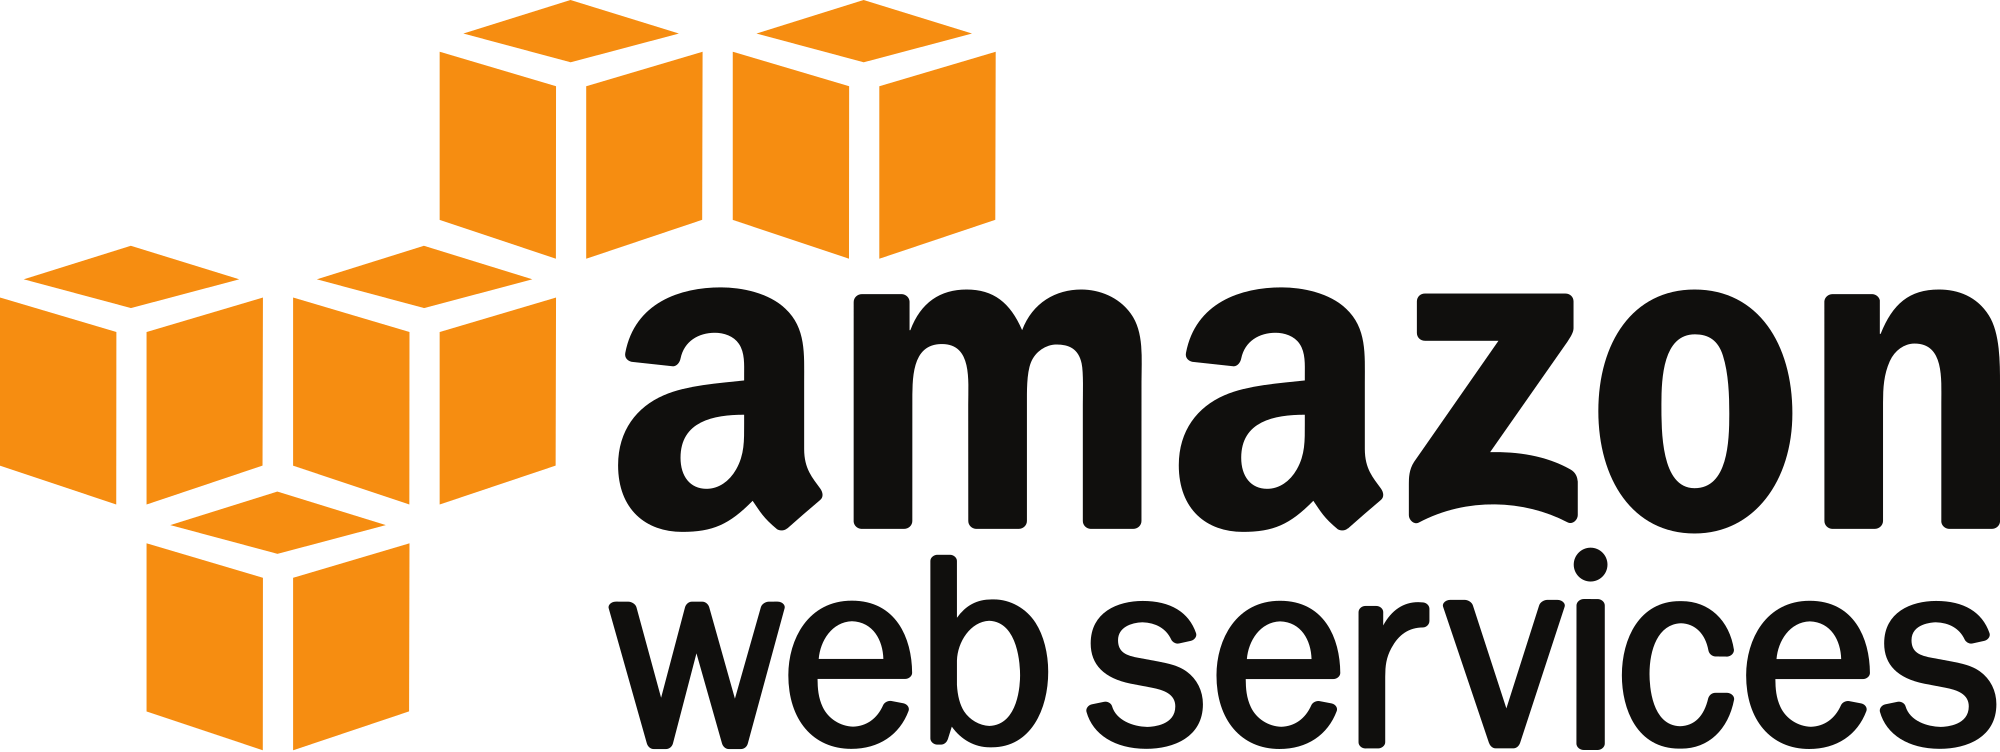 Amazon Web Services Training Courses - AWS Certified Training | New